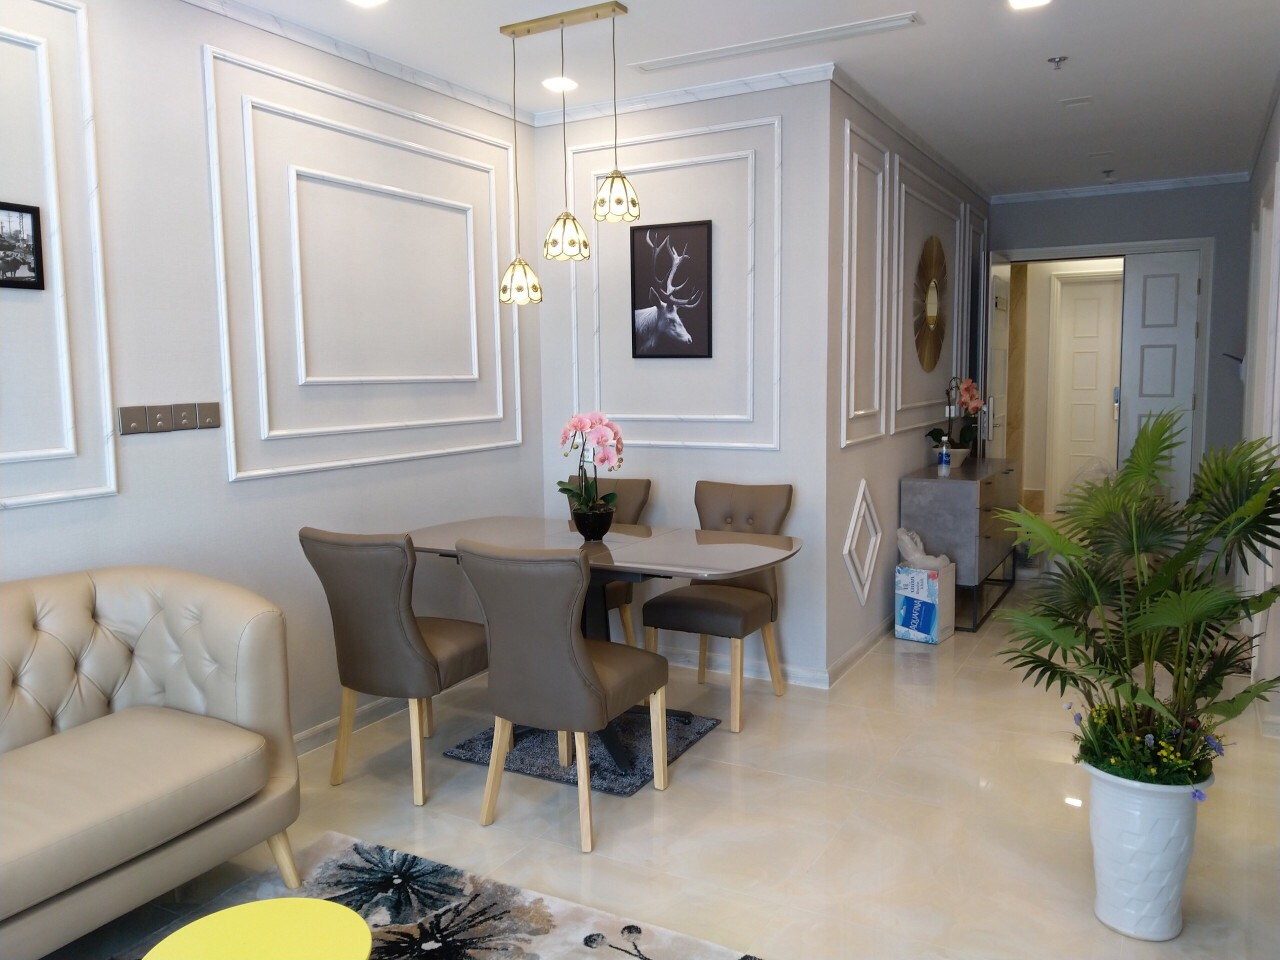 vinhomes golden river apartment for rent in district 1 hcmc D1021122 (8)